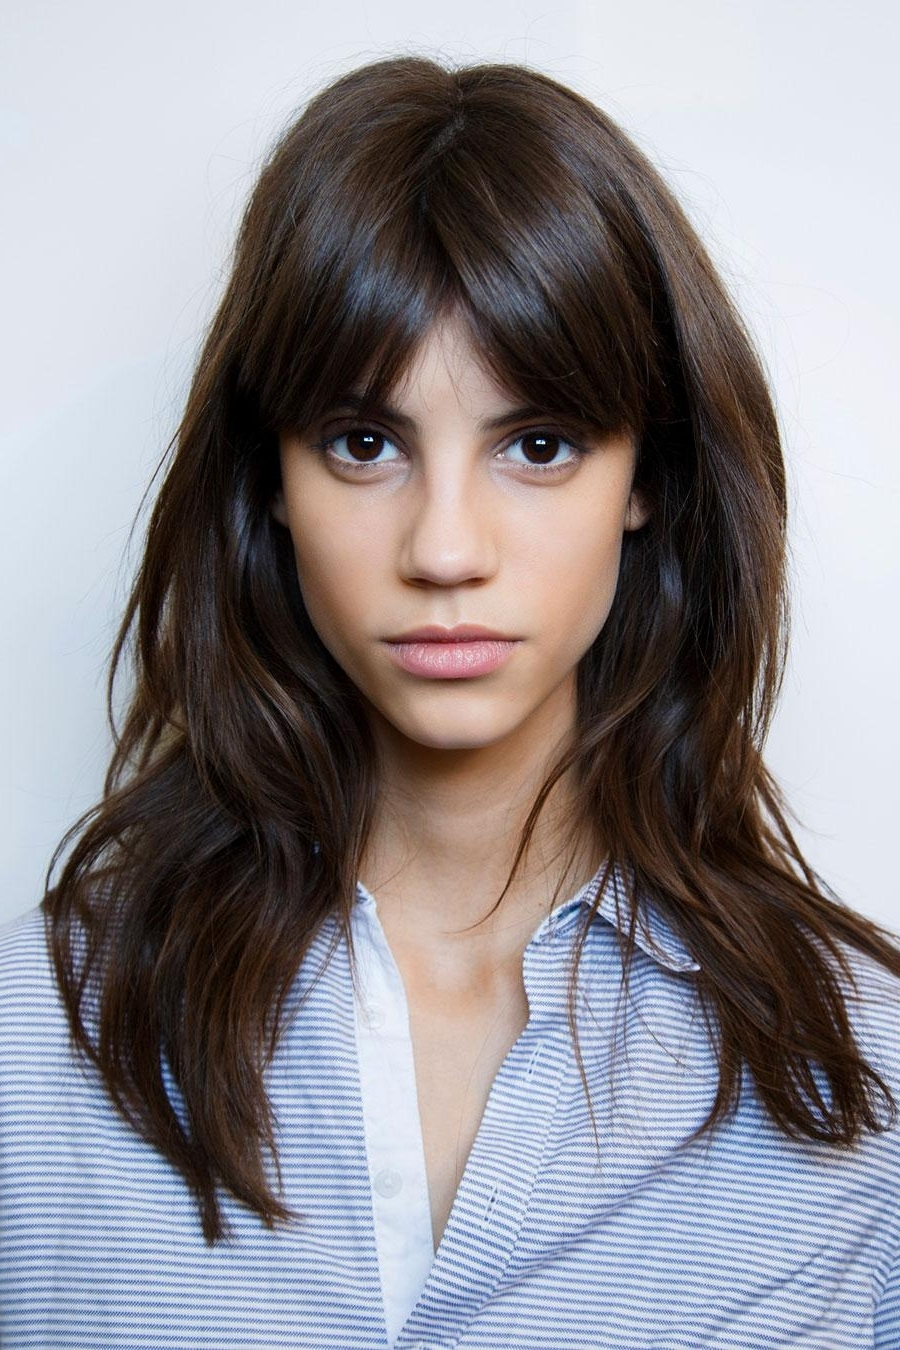 Widely Used Shaggy Salon Hairstyles For The Most Popular Haircuts Of The Summer, As Toldsalon Stylists (View 14 of 15)